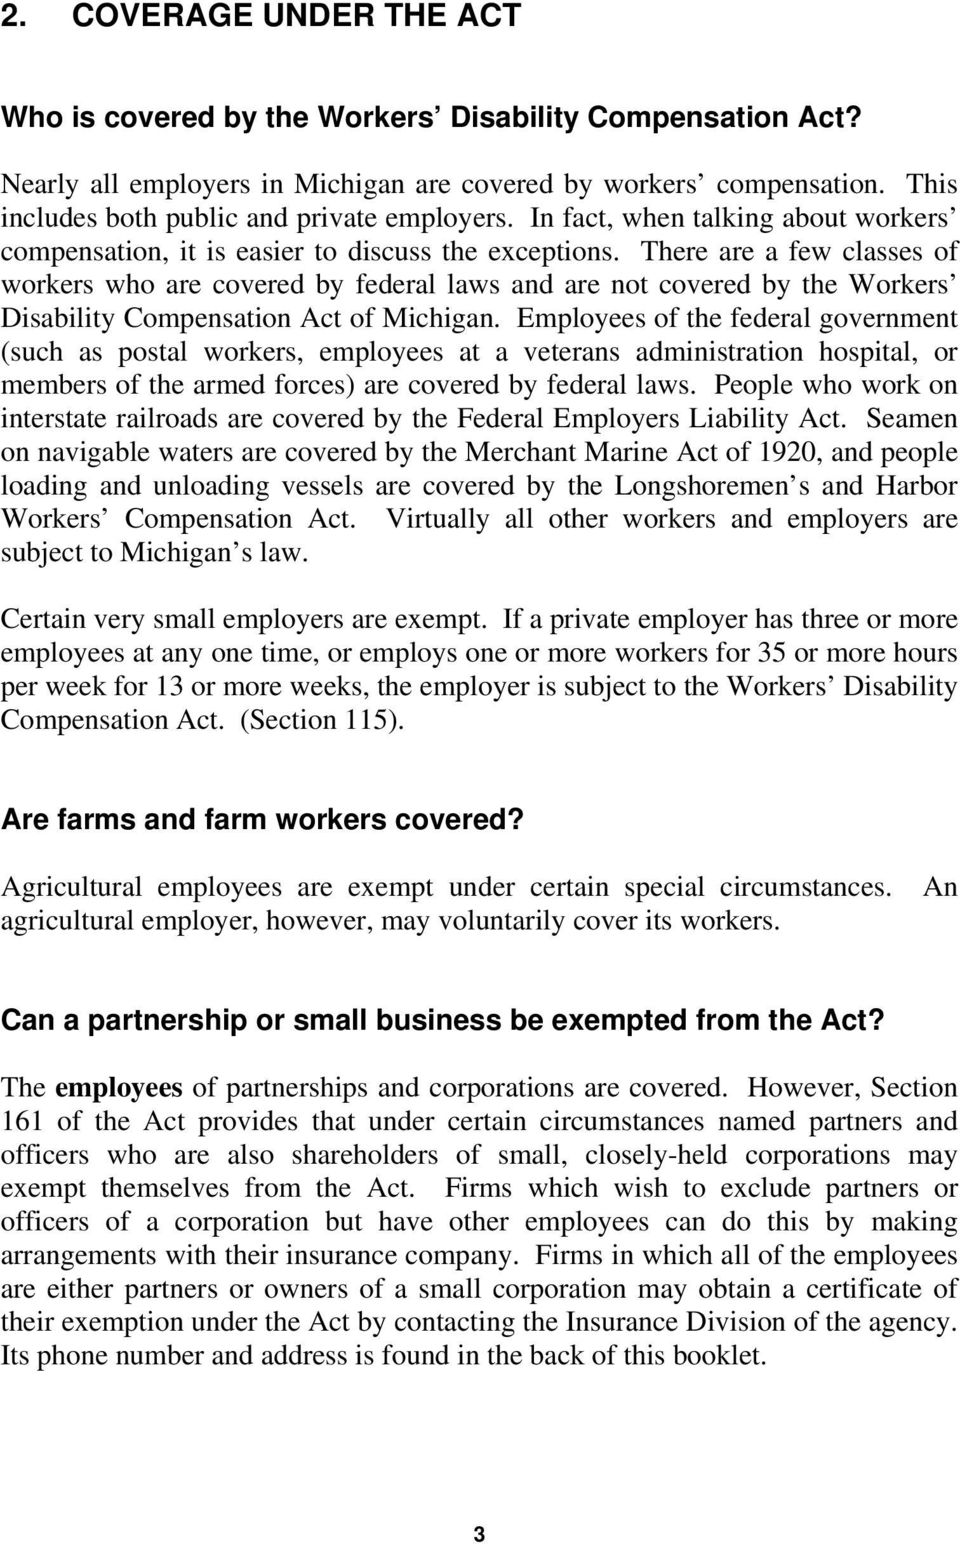 There are a few classes of workers who are covered by federal laws and are not covered by the Workers Disability Compensation Act of Michigan.